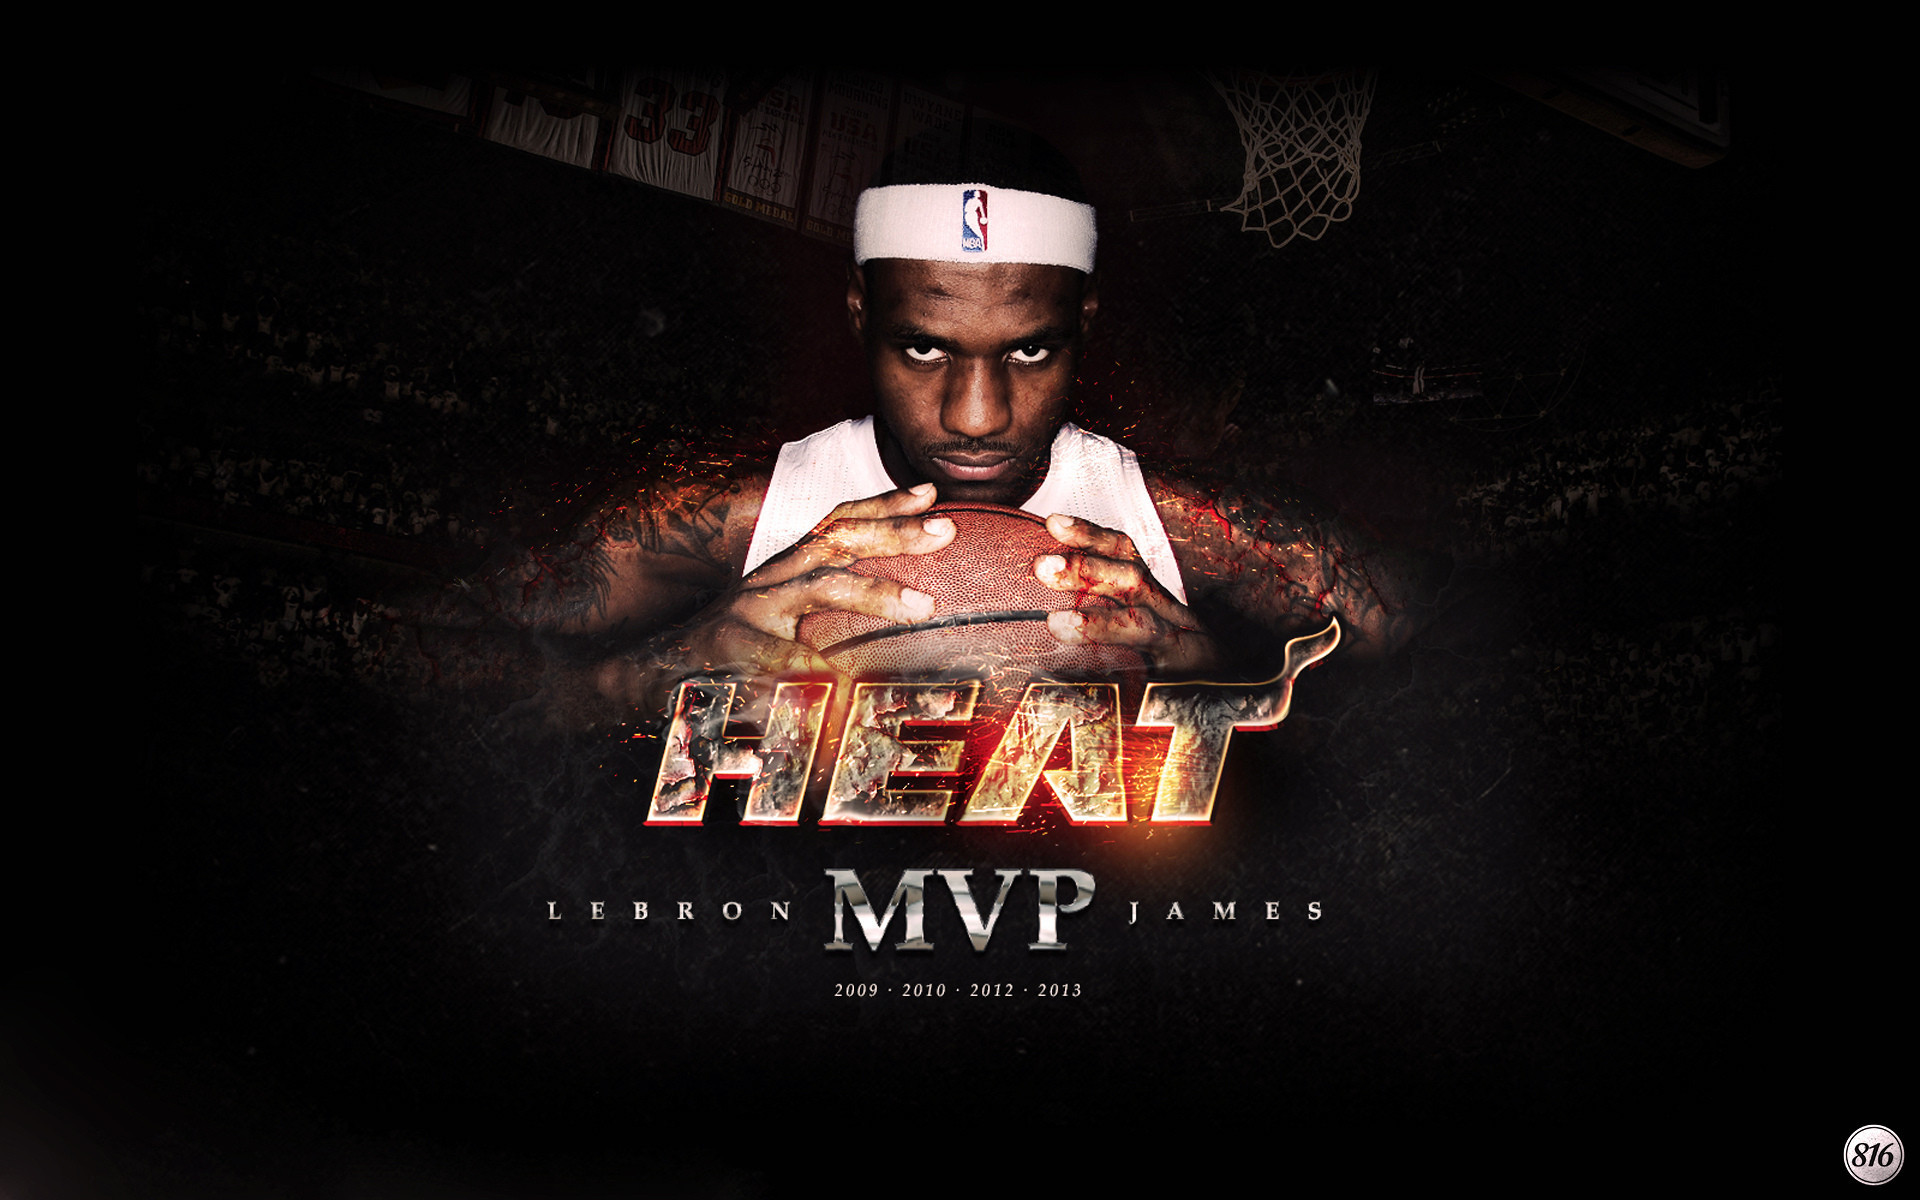 1920x1200 lebron james miami heat mvp wallpaper hd hd background wallpapers free  amazing cool tablet smart phone 4k 1920×1200 Wallpaper HD